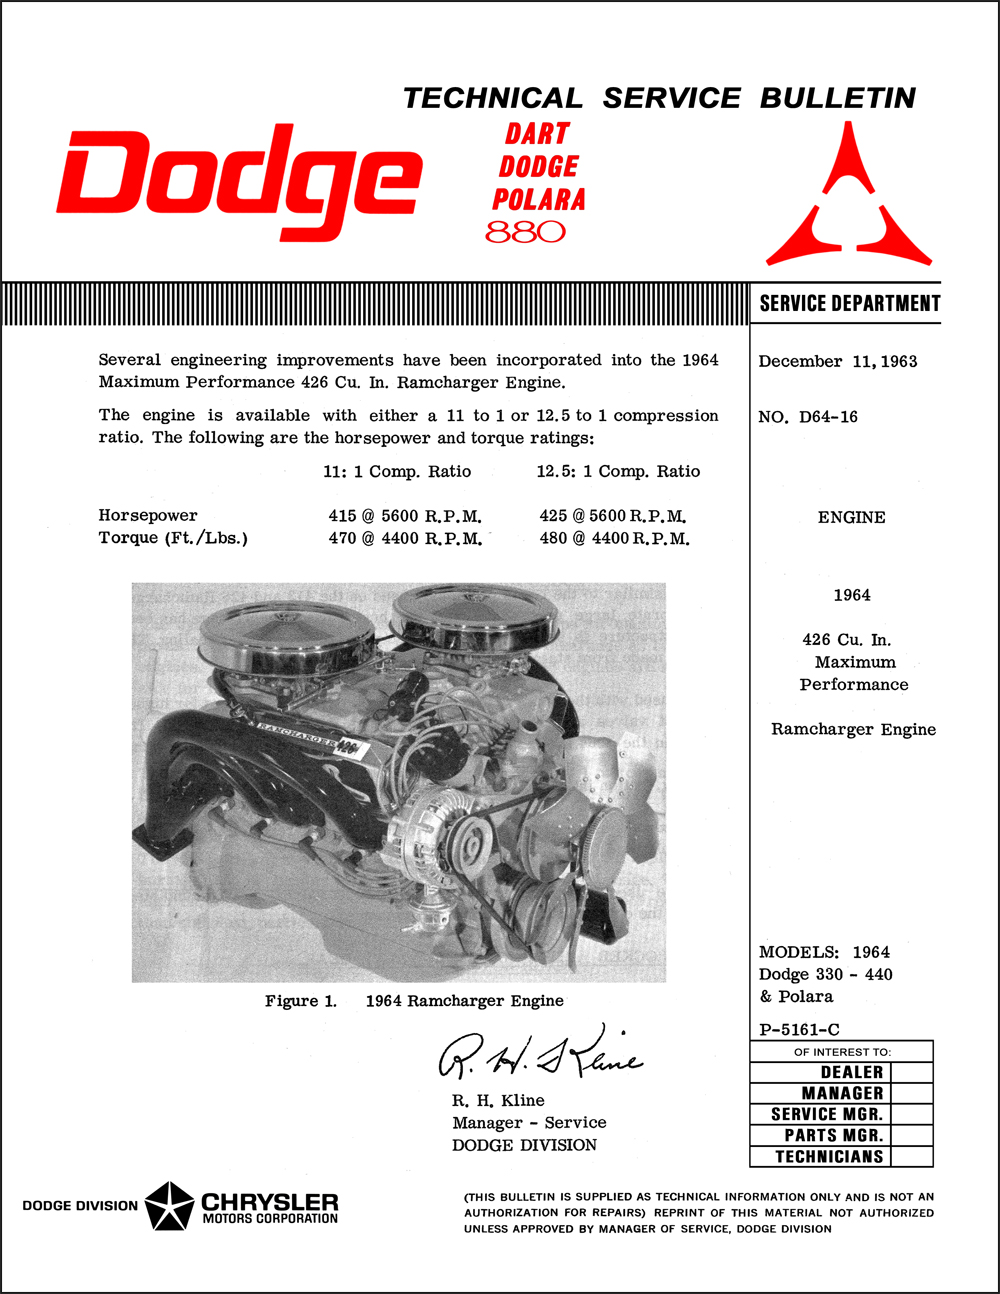 1964 Dodge 426 Ramcharger Repair Shop Manual Supplement Reprint